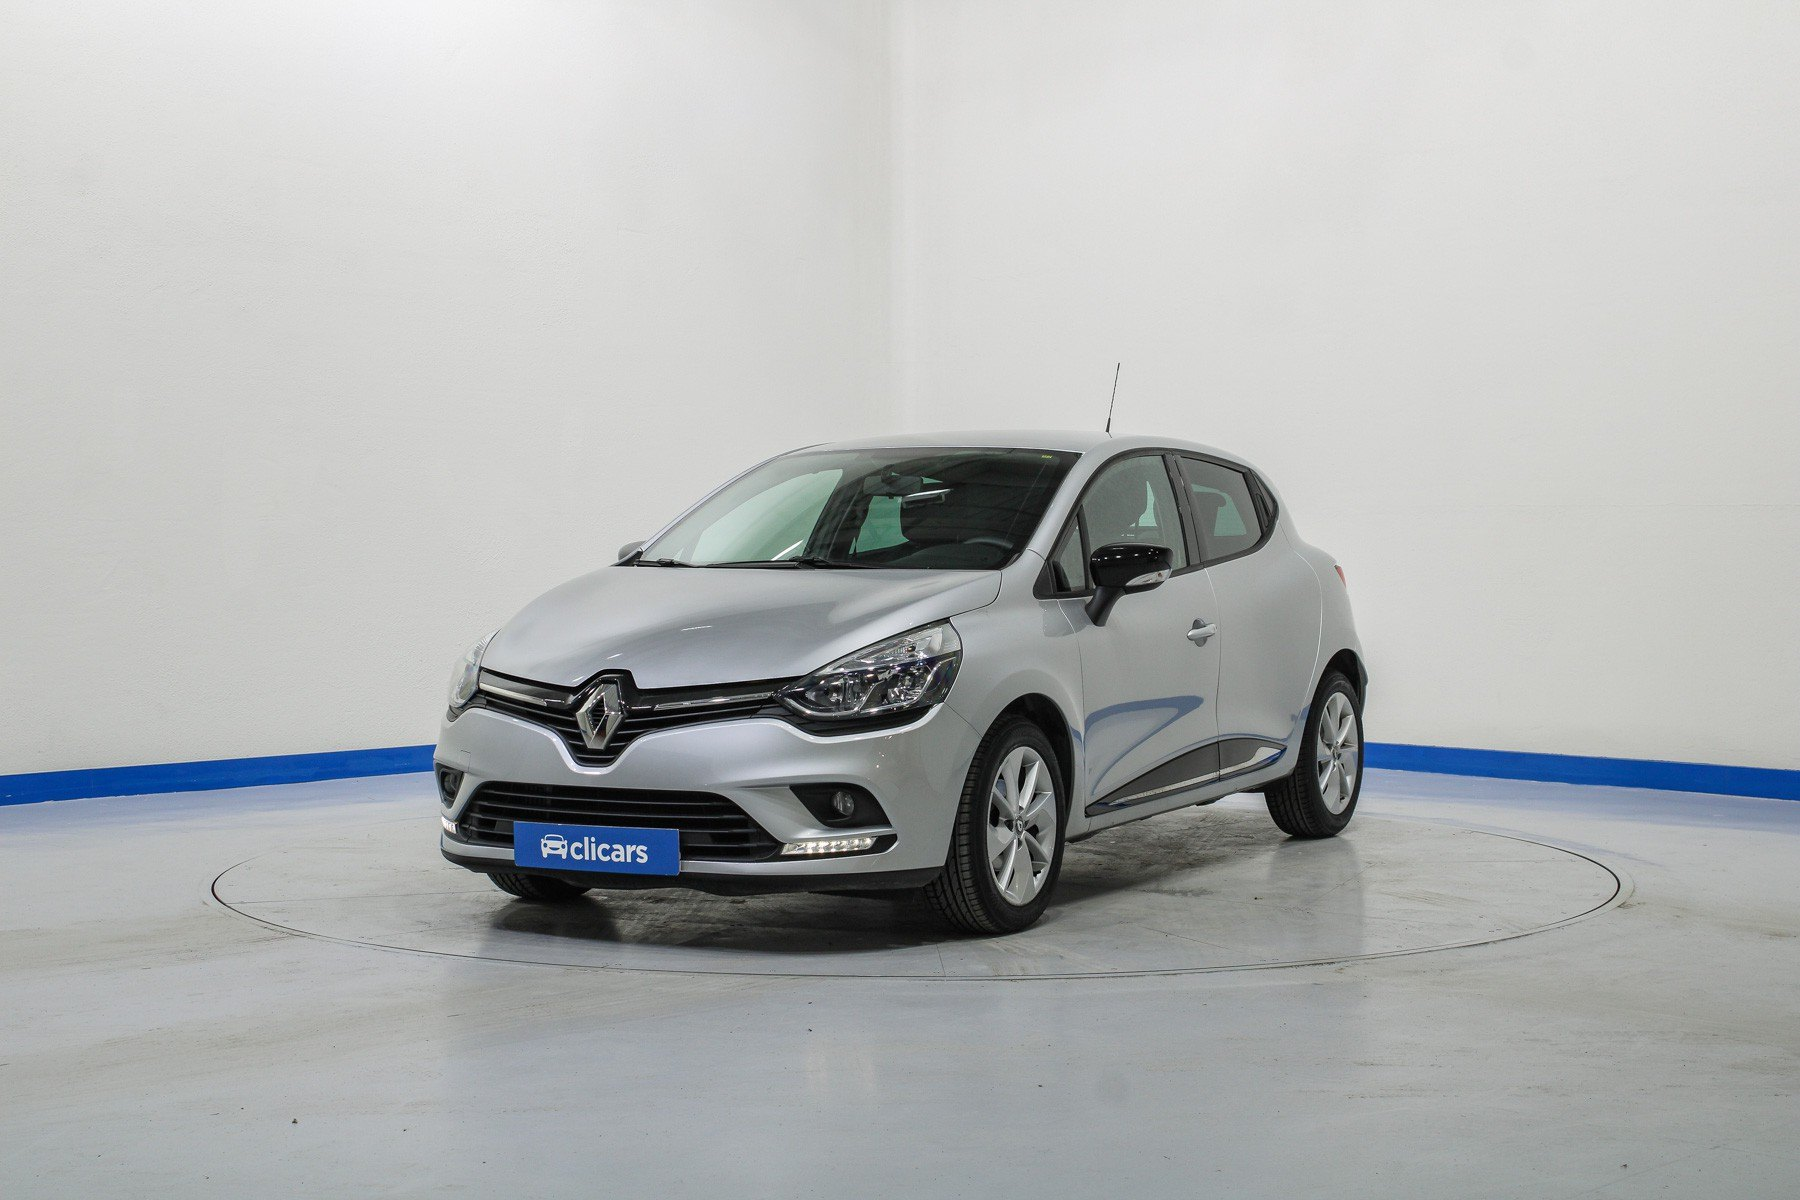 Renault Clio Gasolina Intens TCe 67 kW (91CV) 1